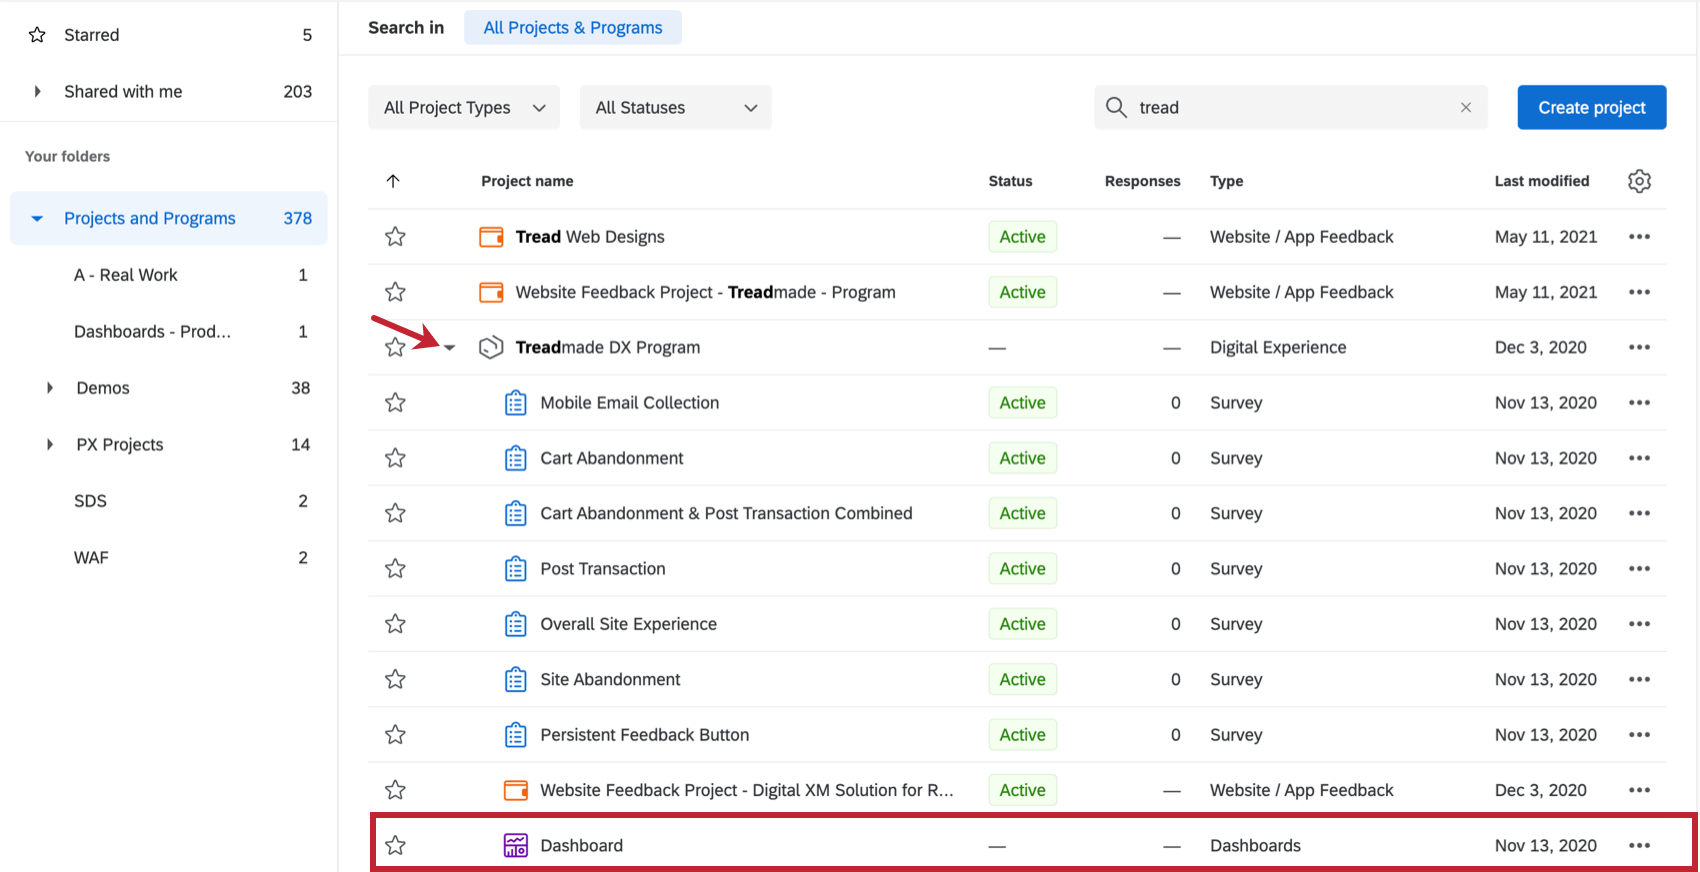 Image of program located on a projects page, expanded to show a bunch of surveys, dashboards, and website / app feedback projects indented underneath it